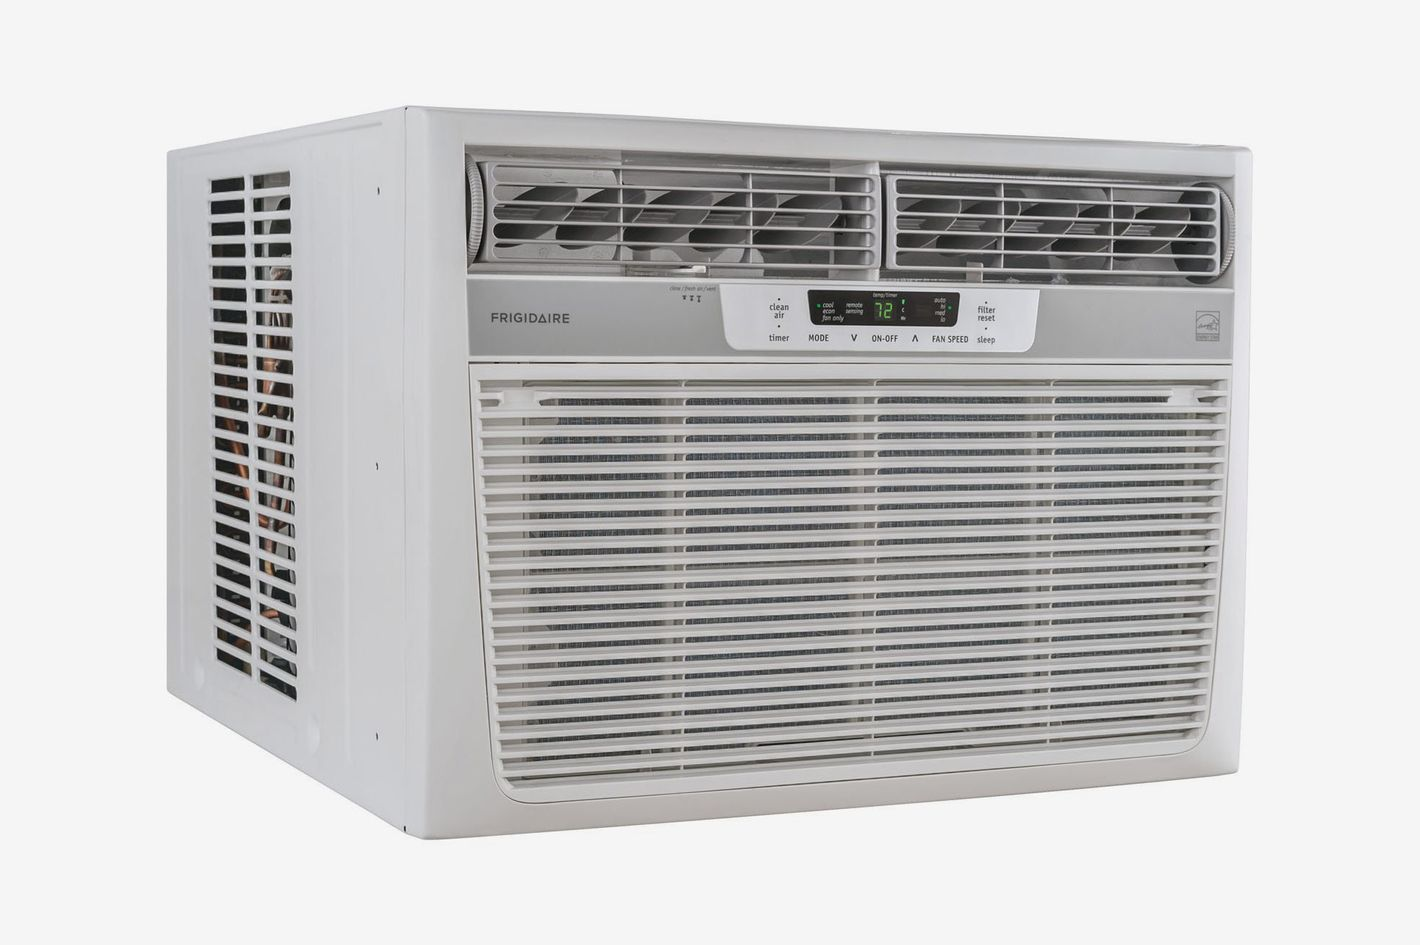 Frigidaire 15,100 BTU Window-Mounted Median Air Conditioner With Temperature Sensing Remote Control